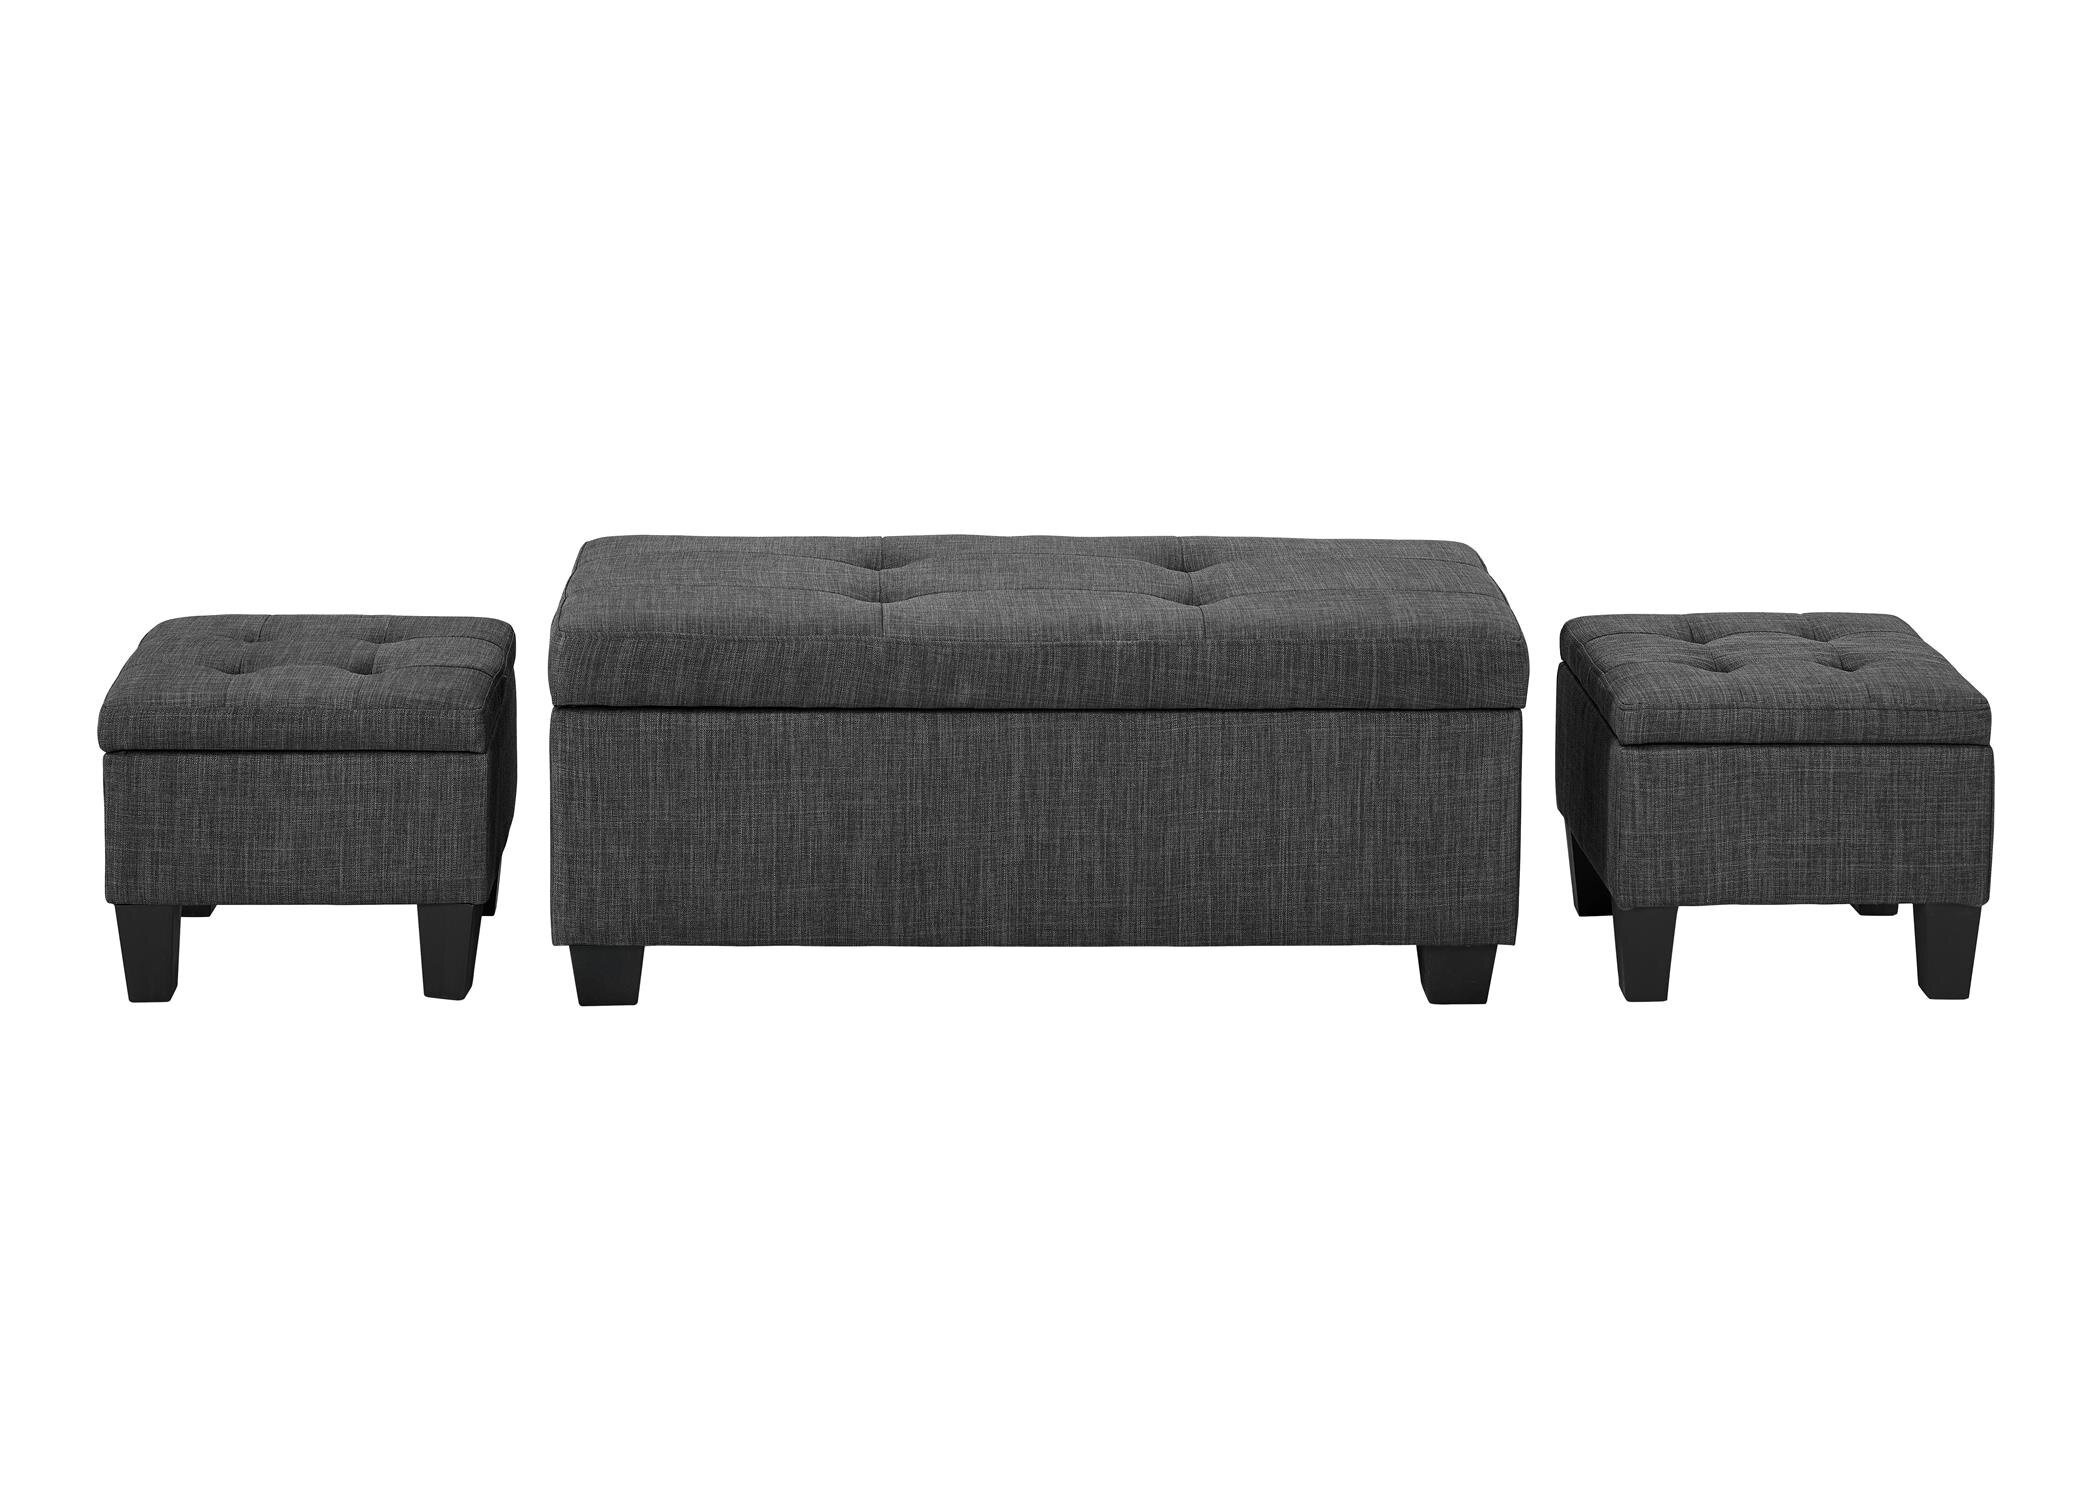 Merveilleux Andover Mills Hirsh 3 Piece Storage Ottoman Set U0026 Reviews | Wayfair